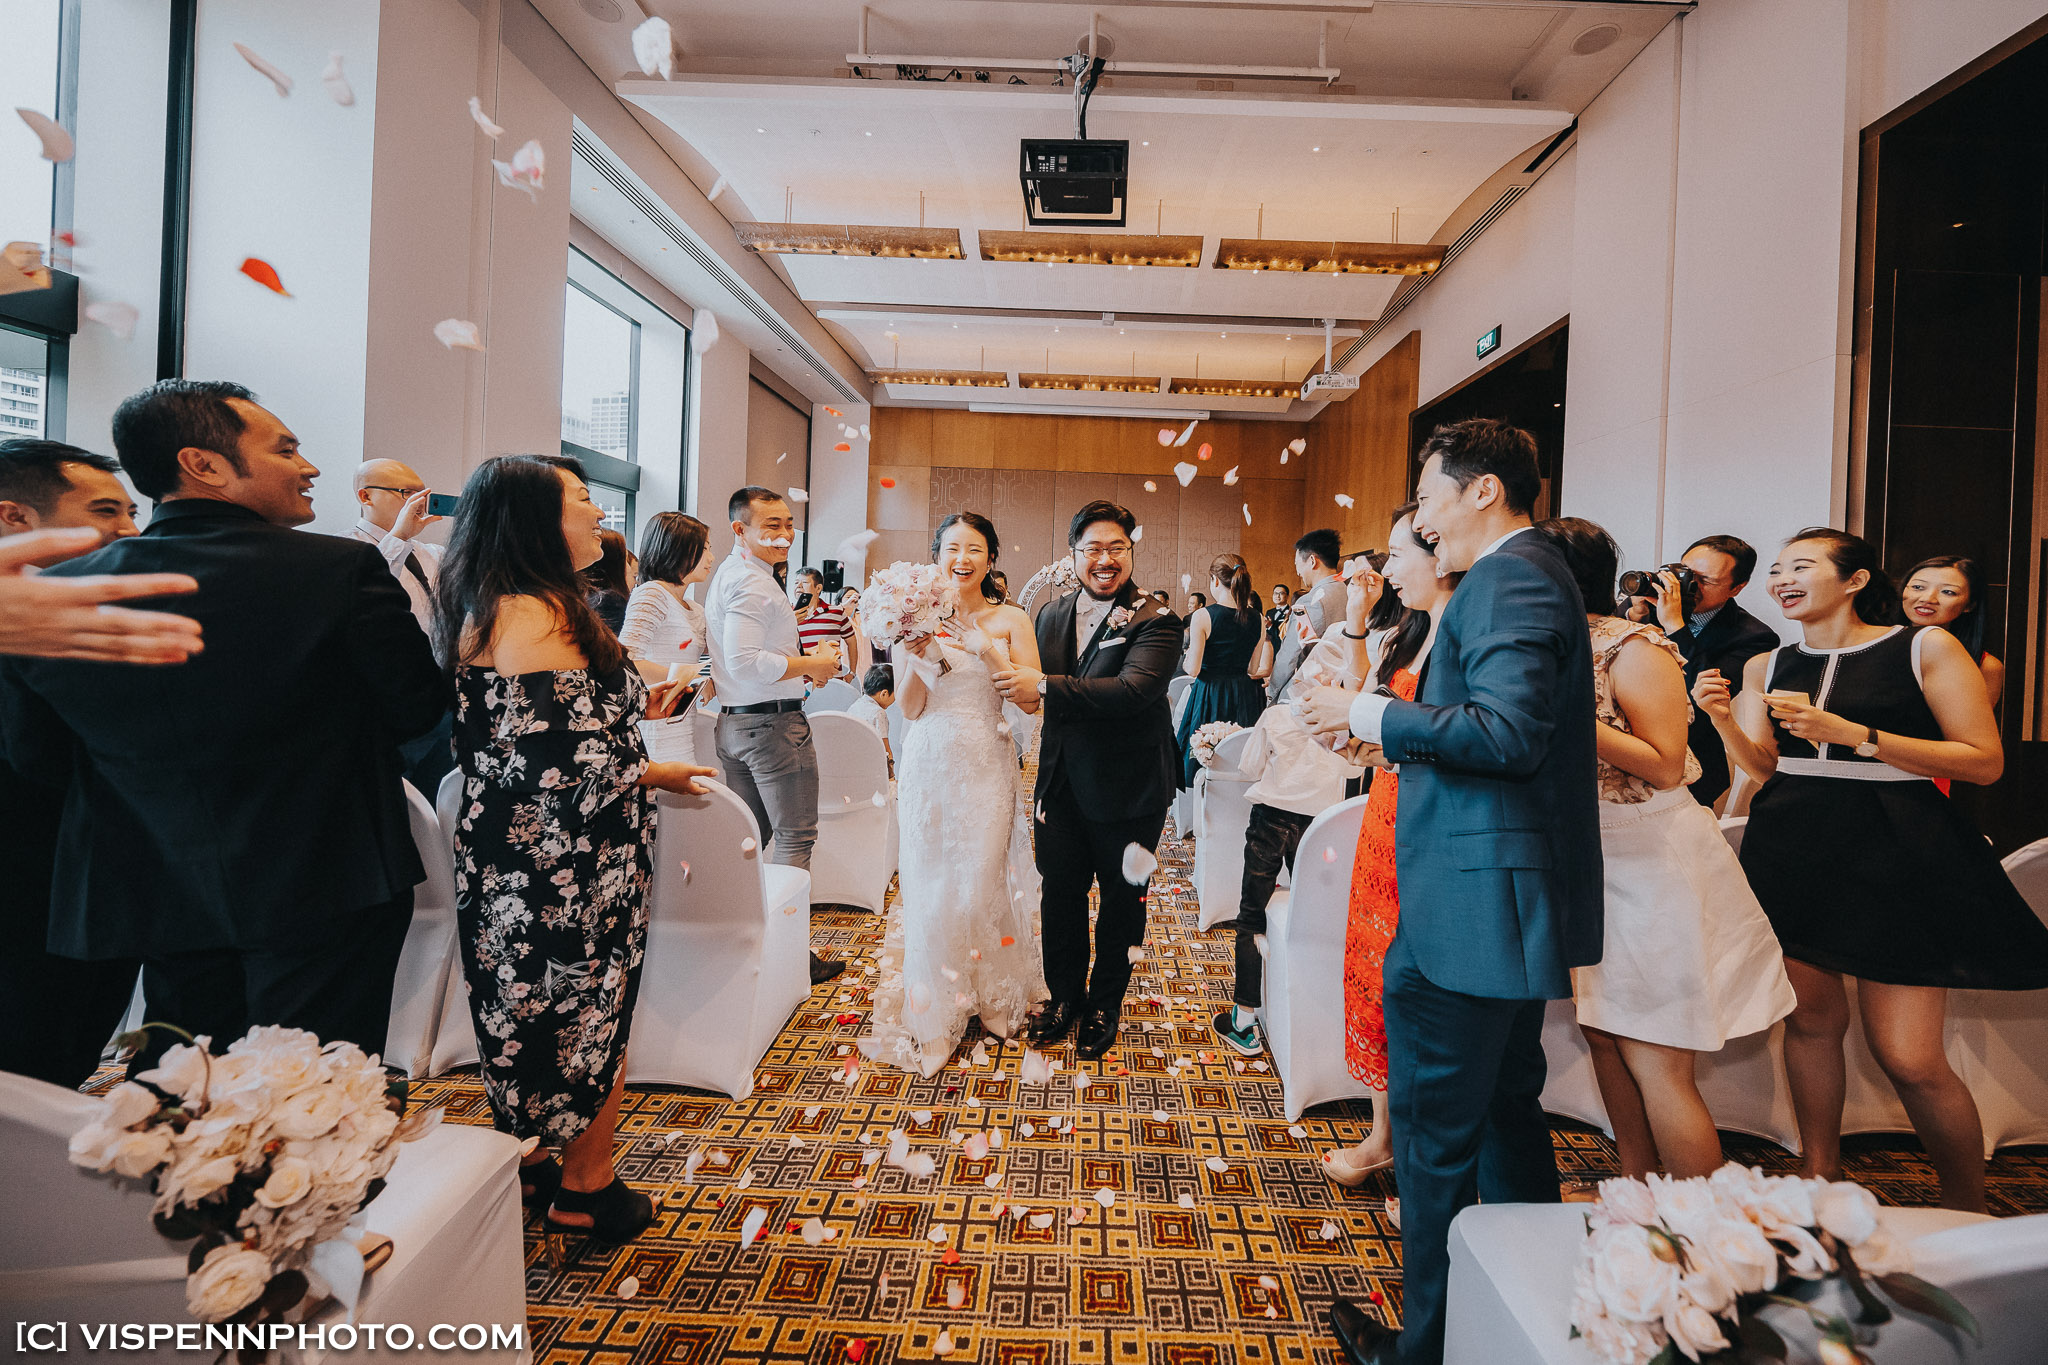 WEDDING DAY Photography Melbourne 5D4 0516